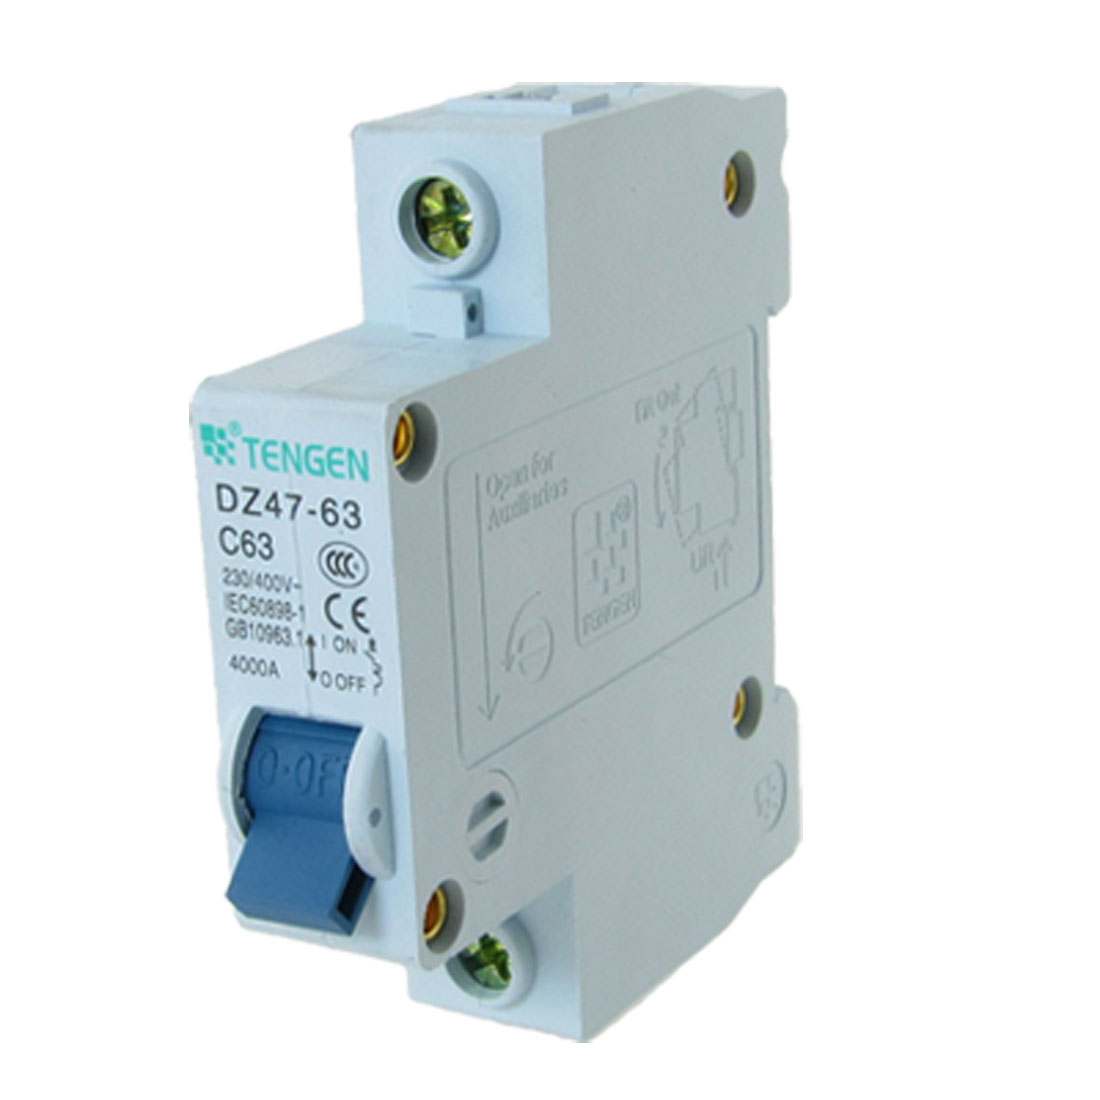 AC 230V/400V 63A Single Pole 1P Miniature Circuit Breaker